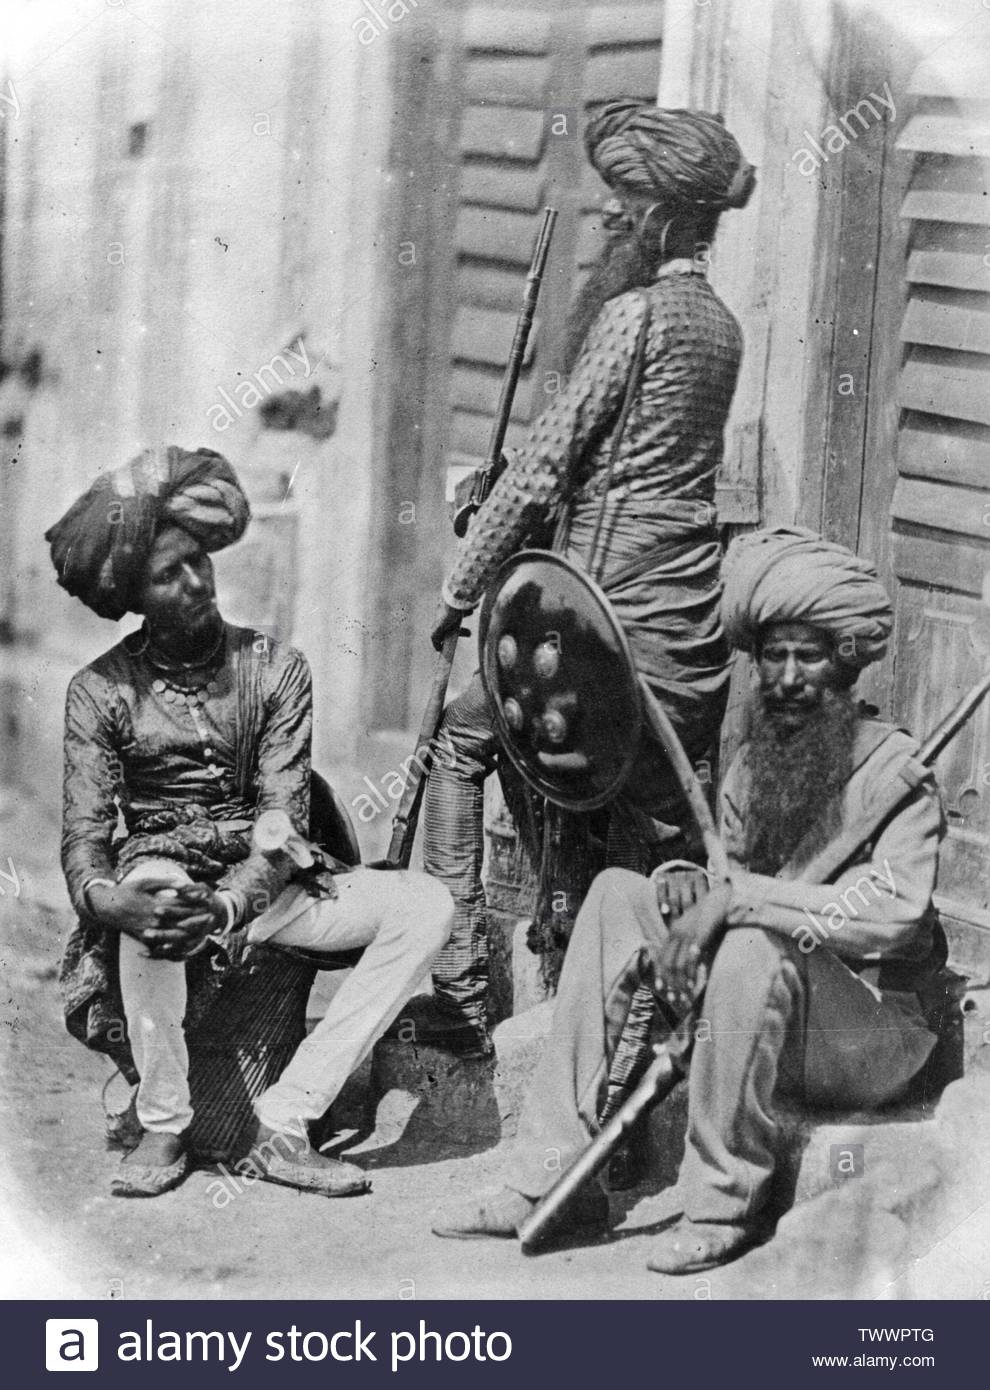 'English: Afghan Sikh Officers of Hodson's Horse, a cavalry regiment of the British Indian Army, during the Indian Rebellion, 1858. (Photo by Felice Beato/Getty Images); 1858; http://www.vintag.es/2013/05/life-in-india-in-19th-century.html; Felice Beato (1832–1909)      Alternative names  Felix Beato  Description Italian photographer, journalist, war photographer, photojournalist and architectural photographer  Date of birth/death  1832 (or perhaps as late as 1834) 29 January 1909 (or perhaps as early as 1907)  Location of birth/death  Venice, Austria-Hungary Florence, Italy  Work period 19 - Stock Image